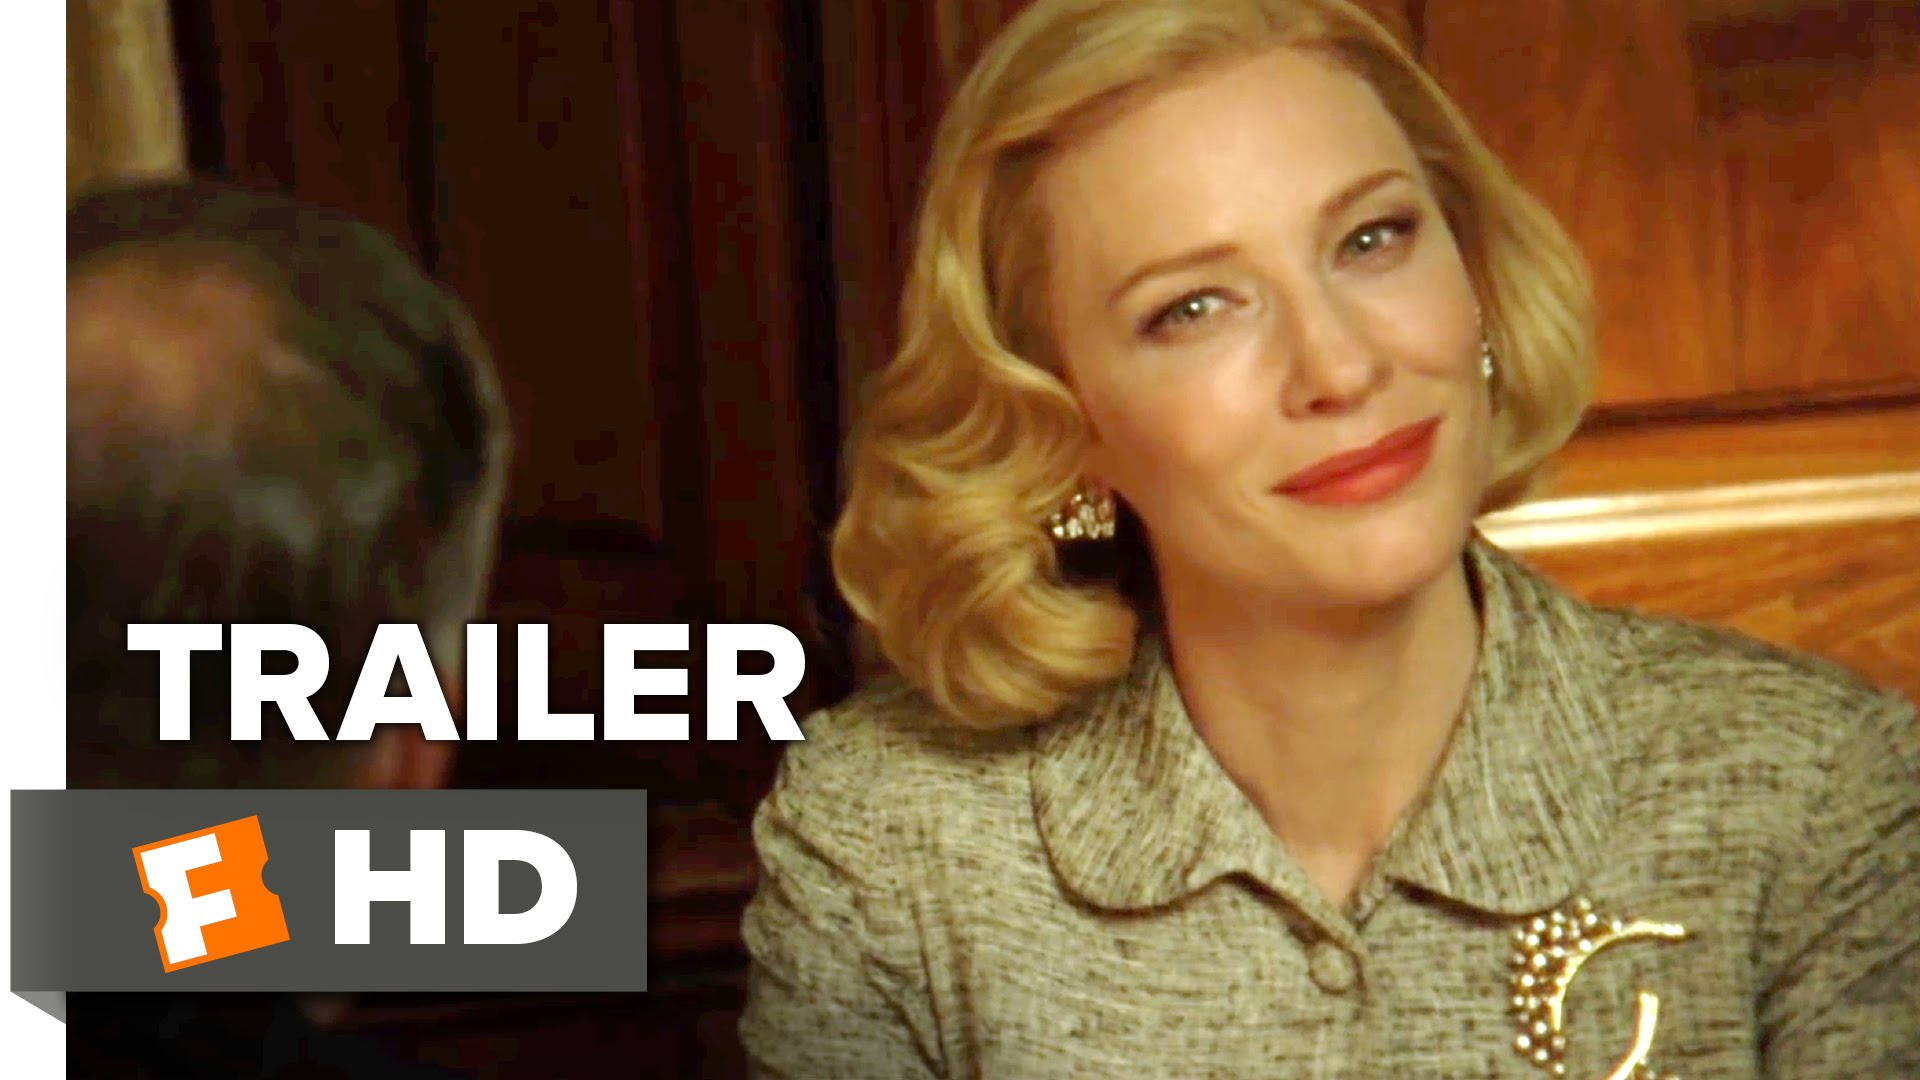 Carol Official Trailer #2 (2015) - Rooney Mara, Cate Blanchett Romance Movie HD